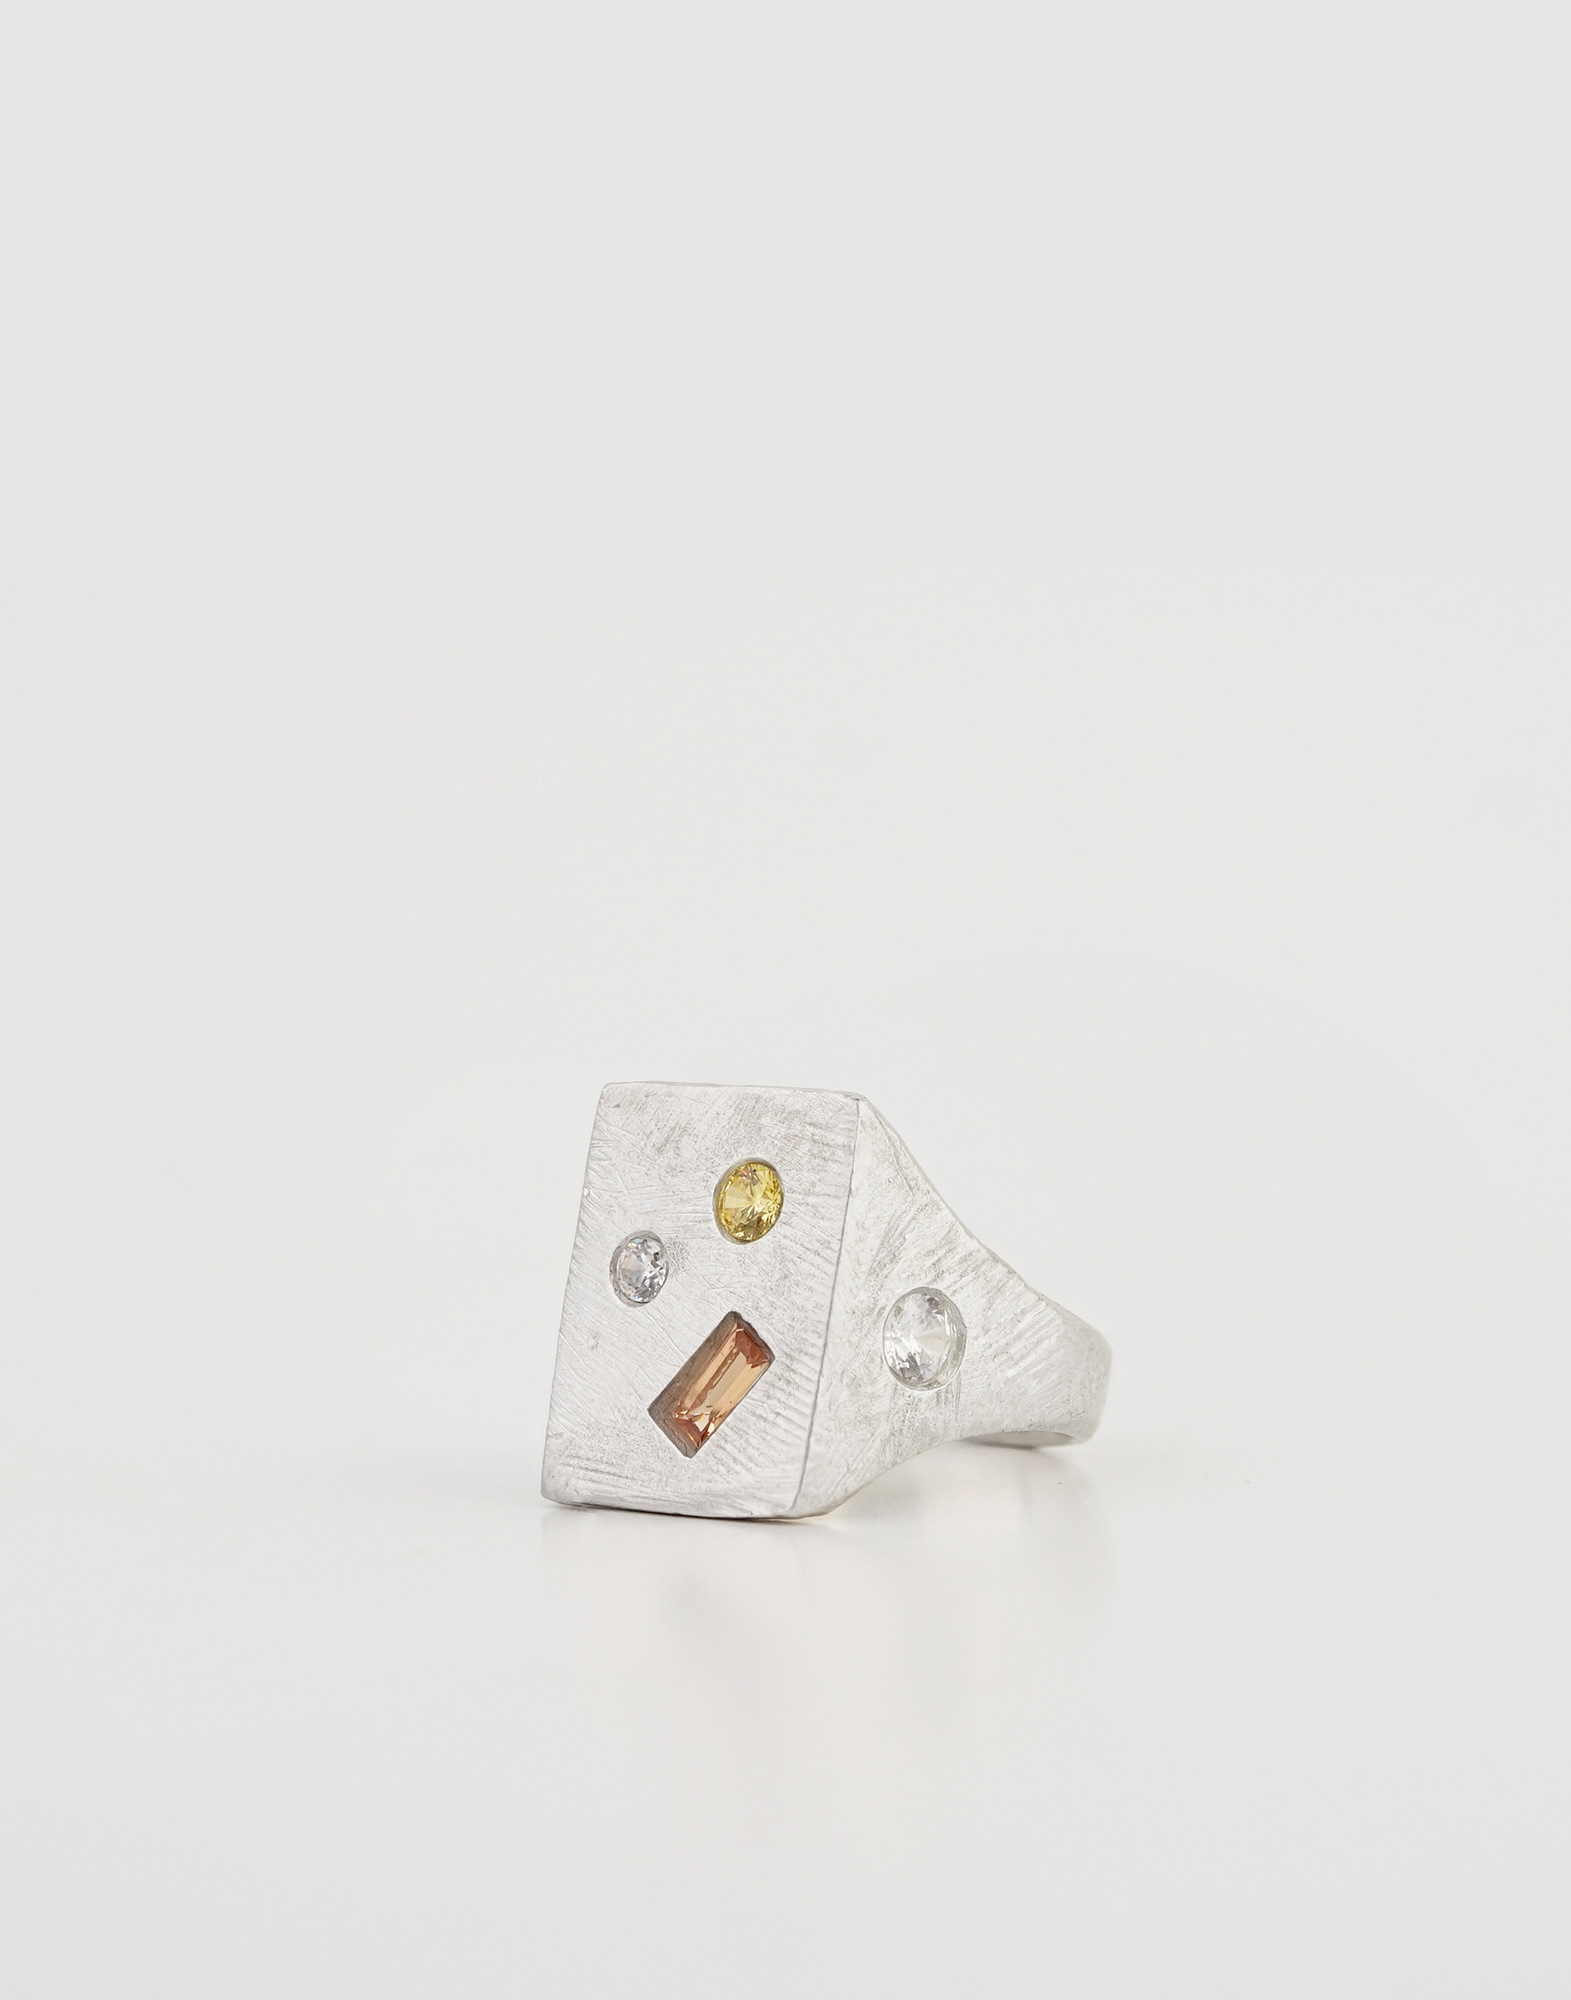 Signet ring(Lemon Orange Crystal)